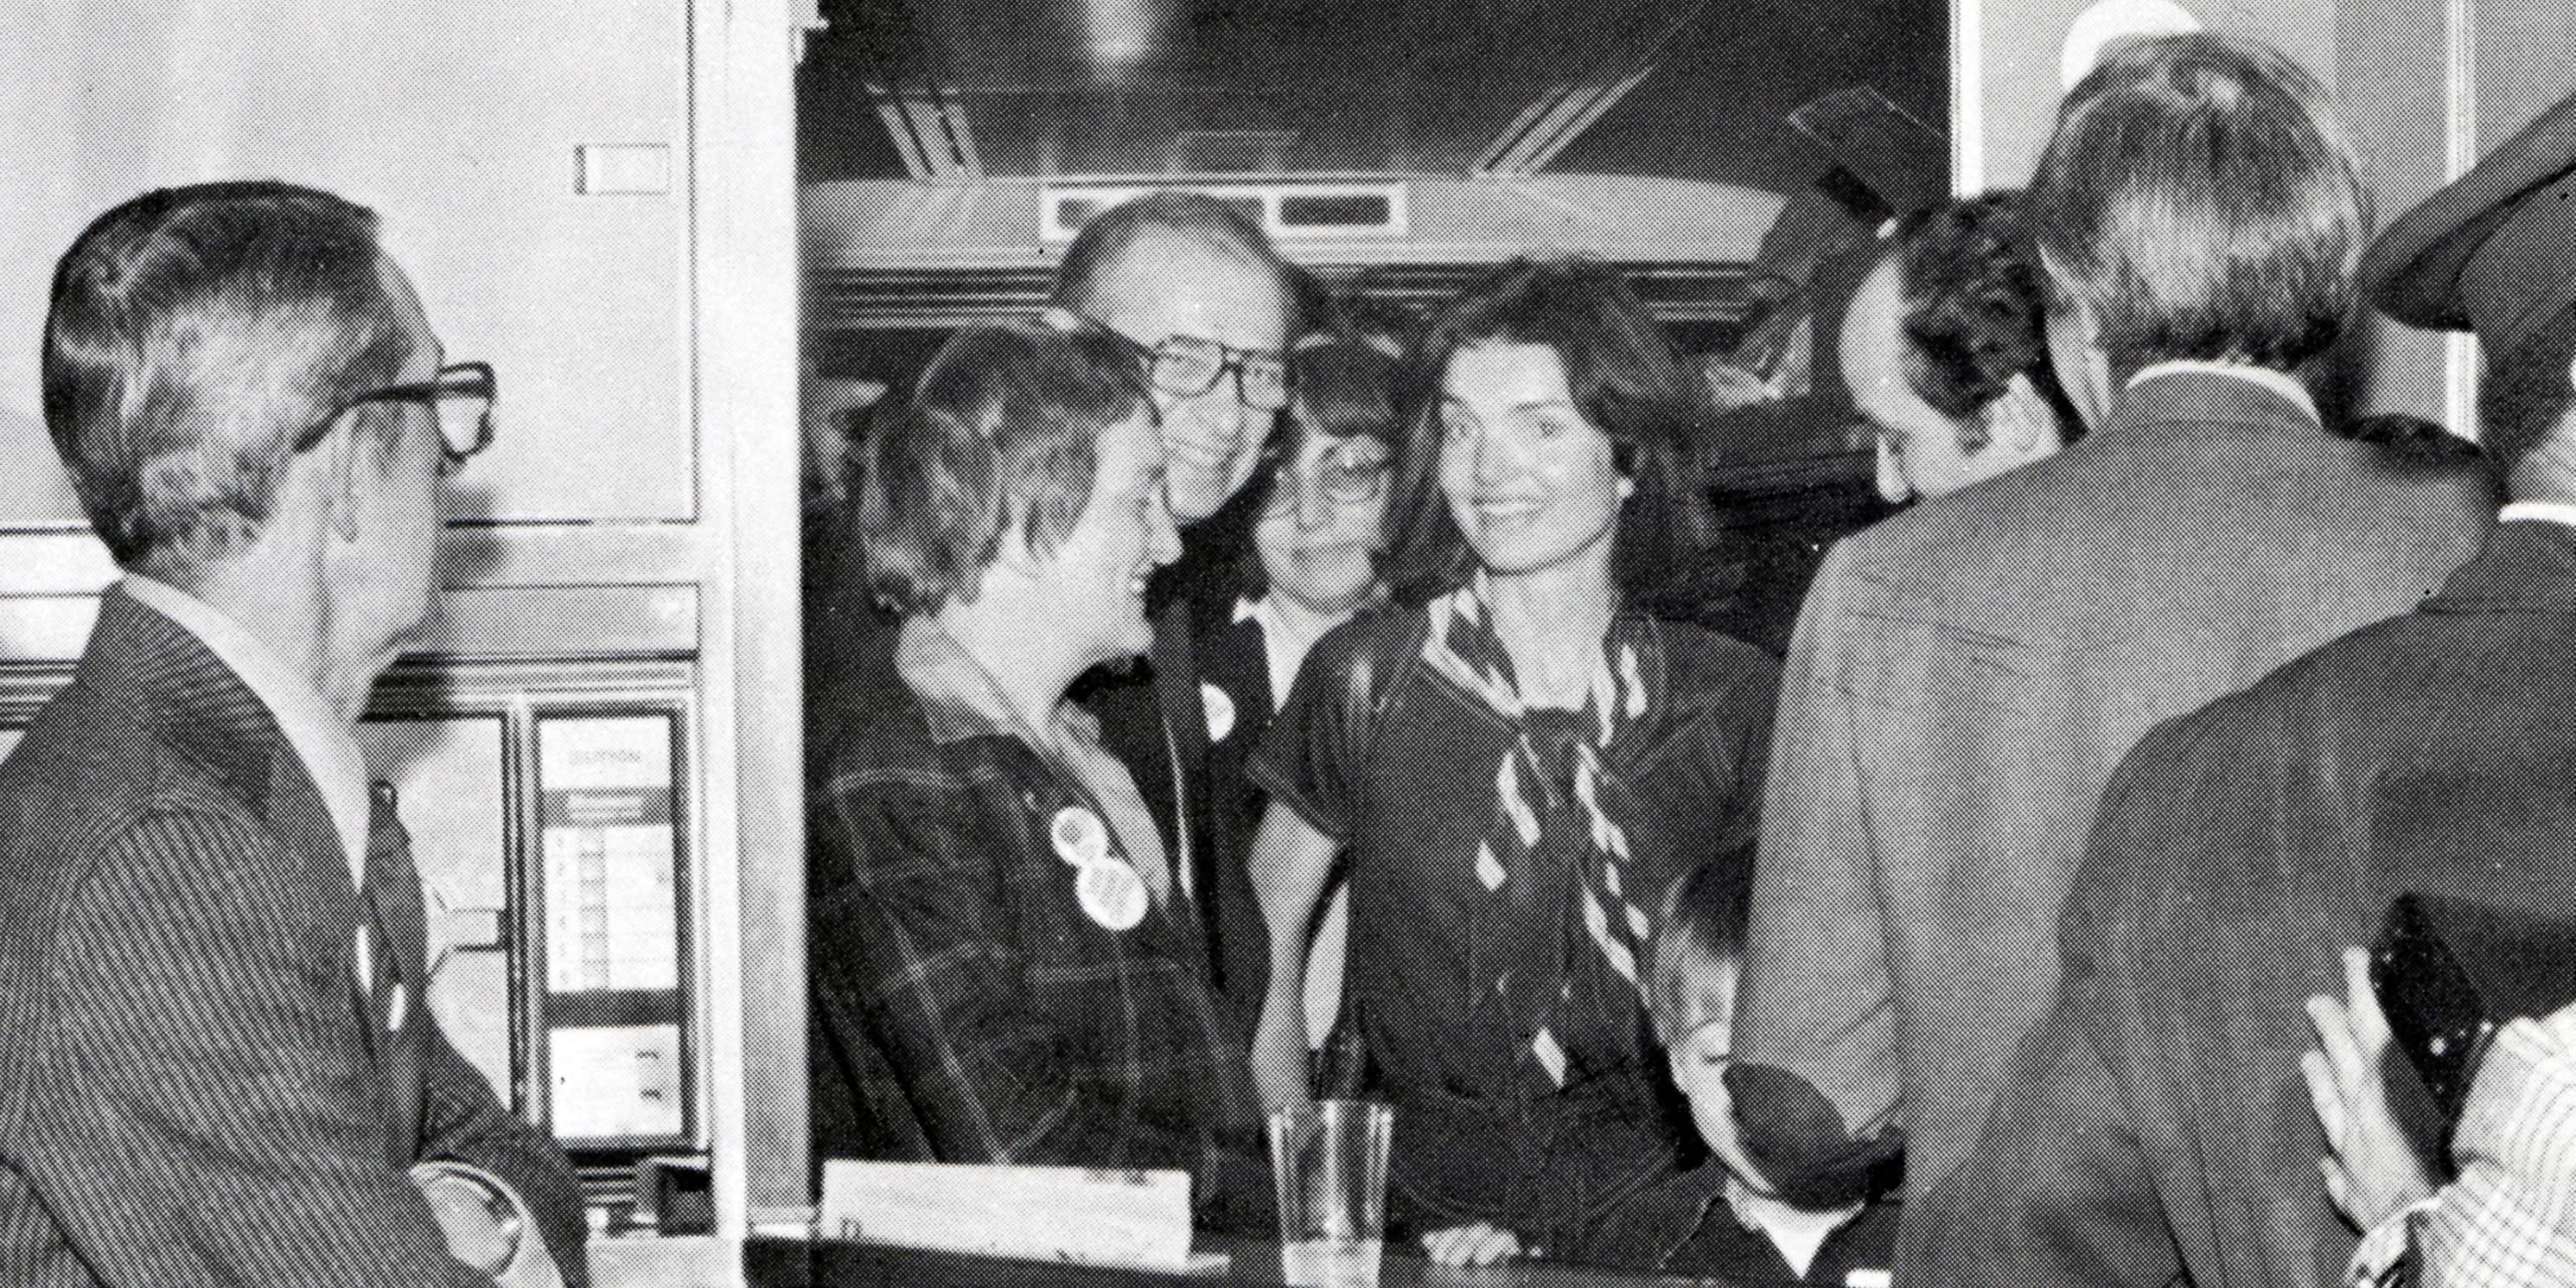 Jacqueline Kennedy Onassis on train with supporters